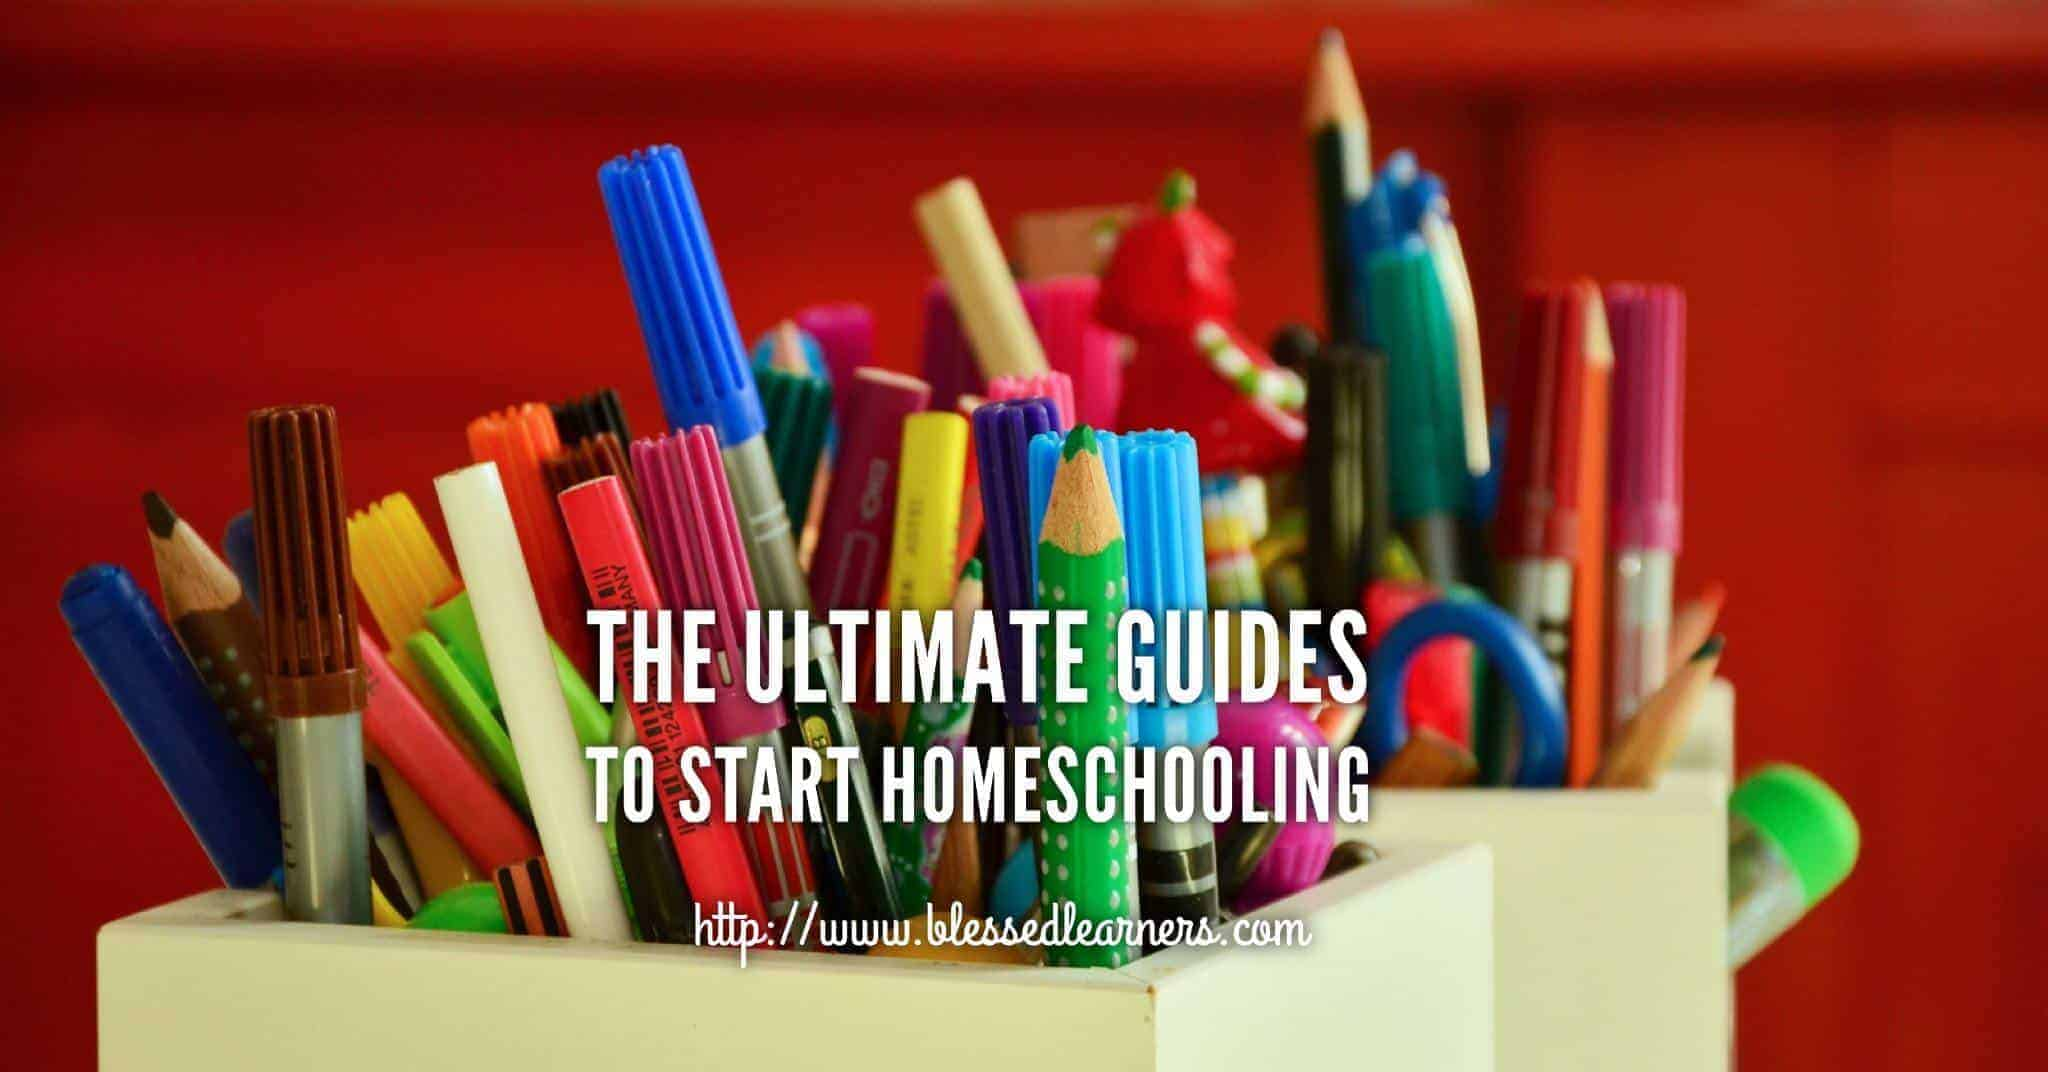 The Ultimate Guides to Start Homeschooling FB